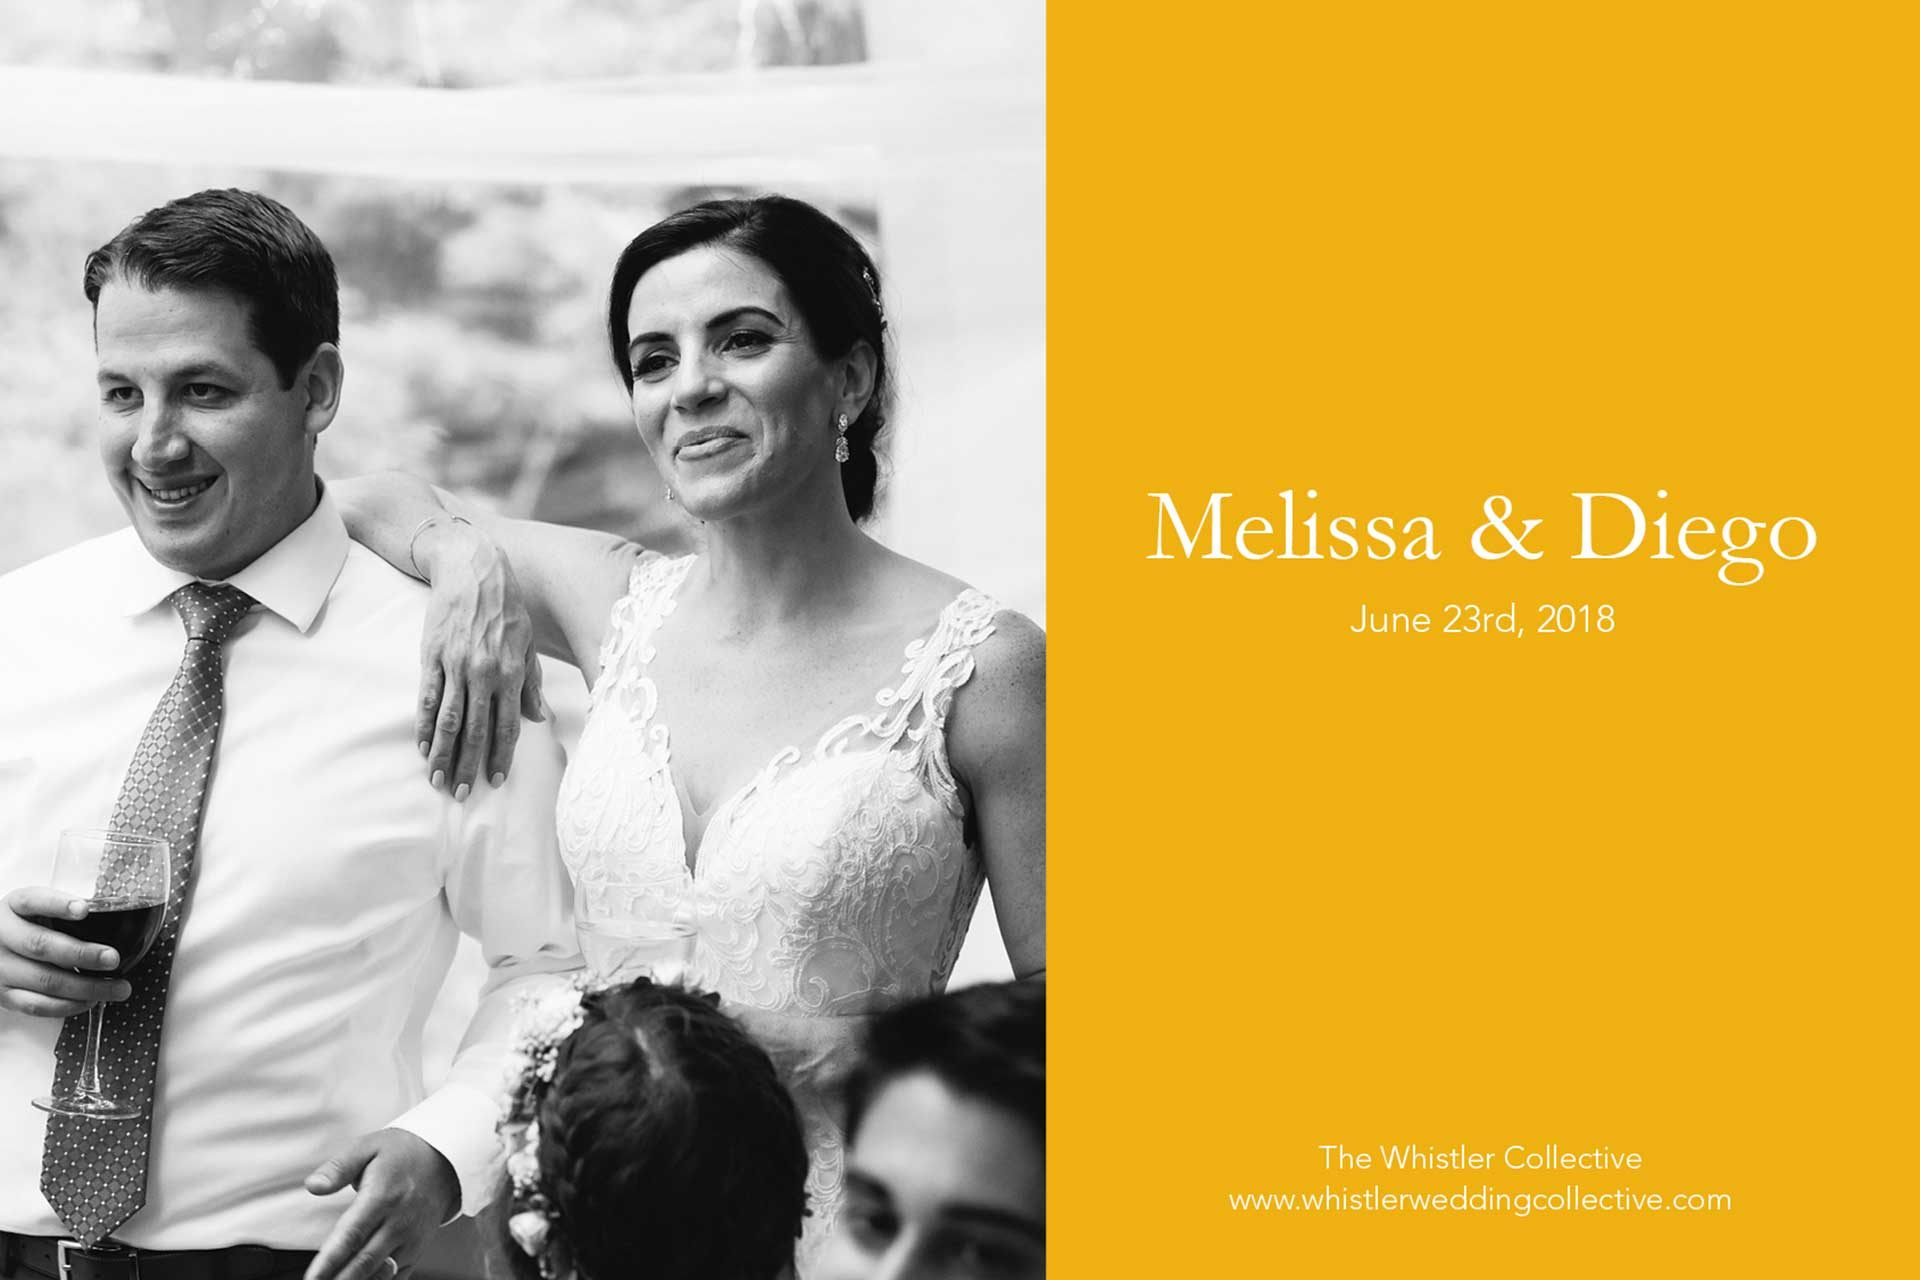 Melissa and Diego's Wedding